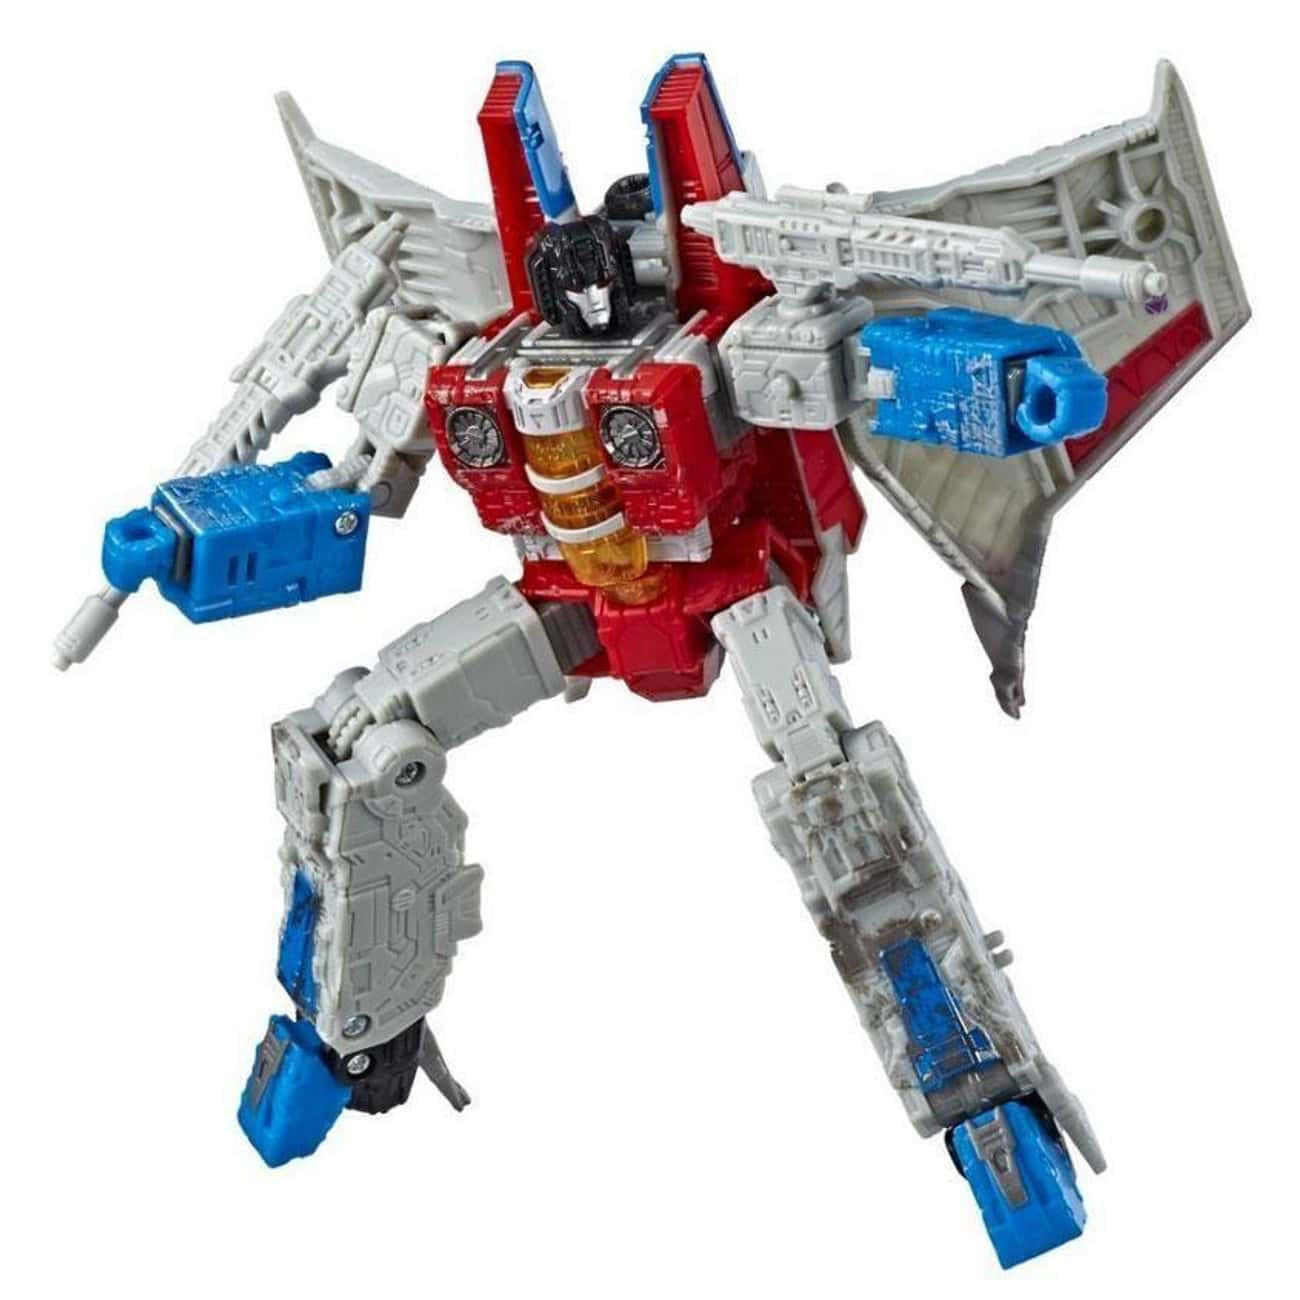 Siege Starscream is listed (or ranked) 4 on the list The Best Starscream Toys, Ranked